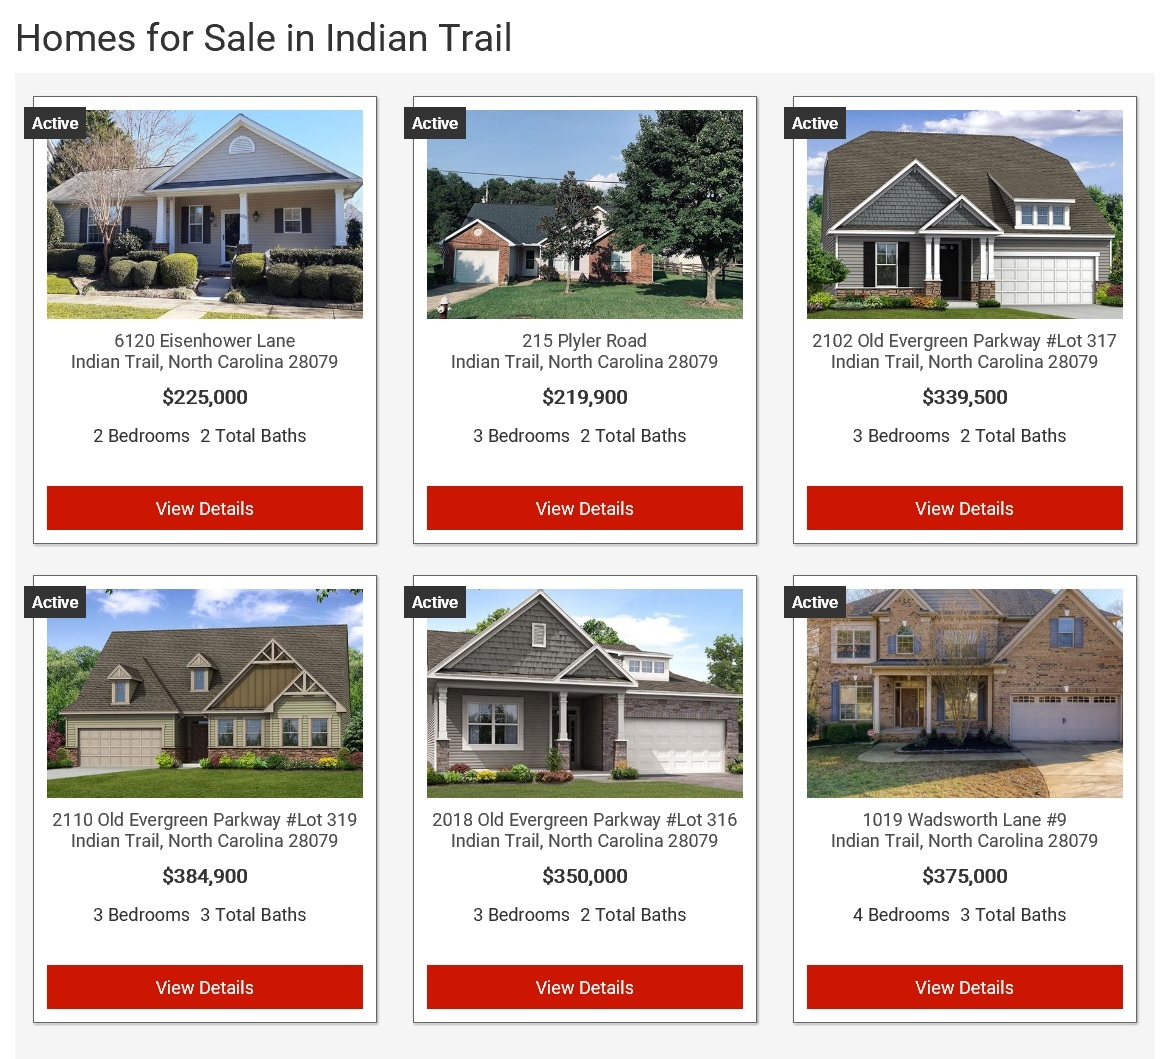 Search homes for sale in Indian Trail, NC